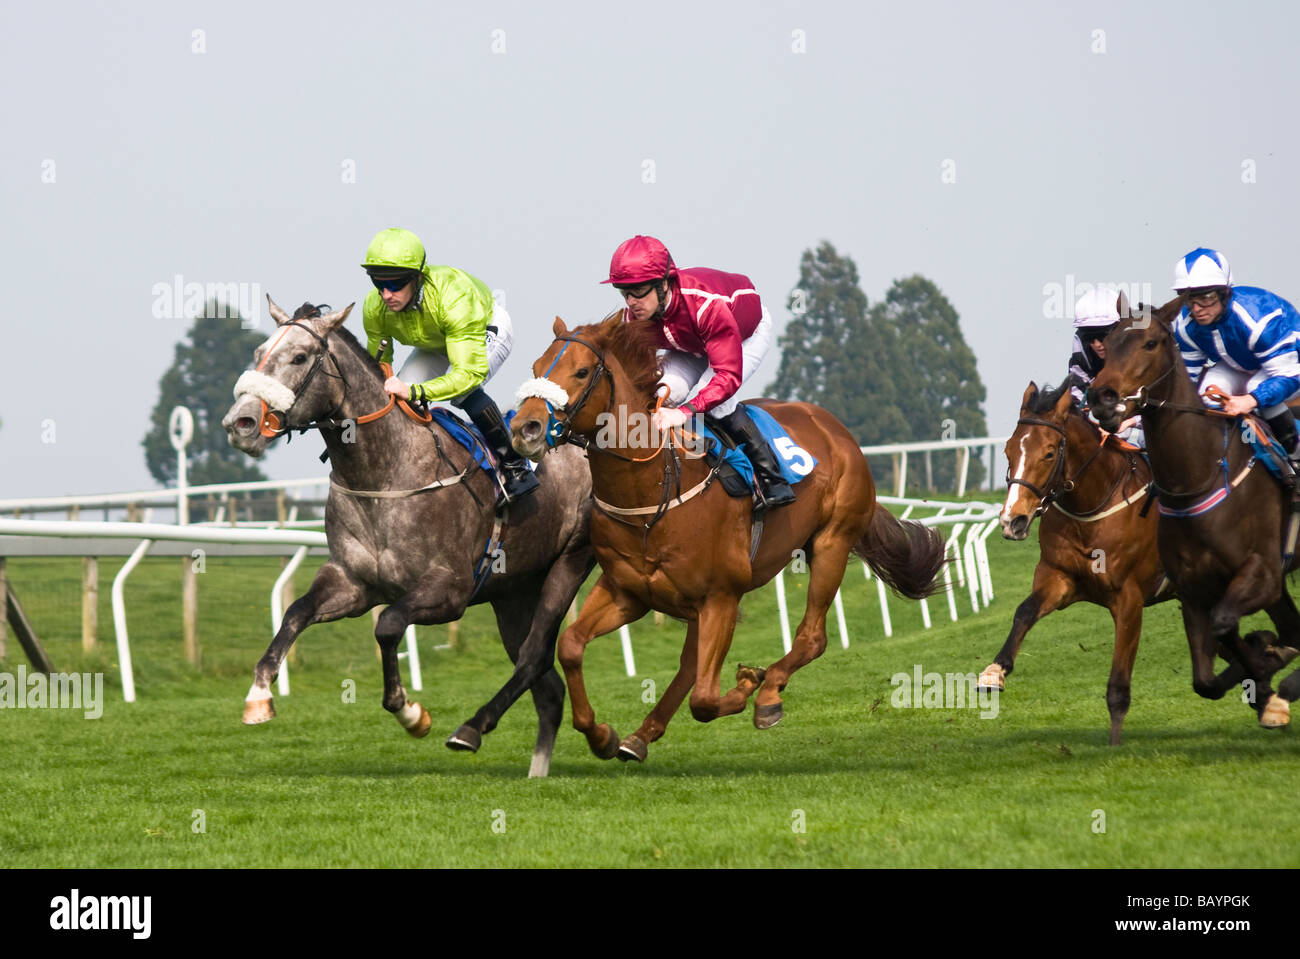 Throroughbred horse racing on Beverley Westwood, East Yorkshire - Stock Image